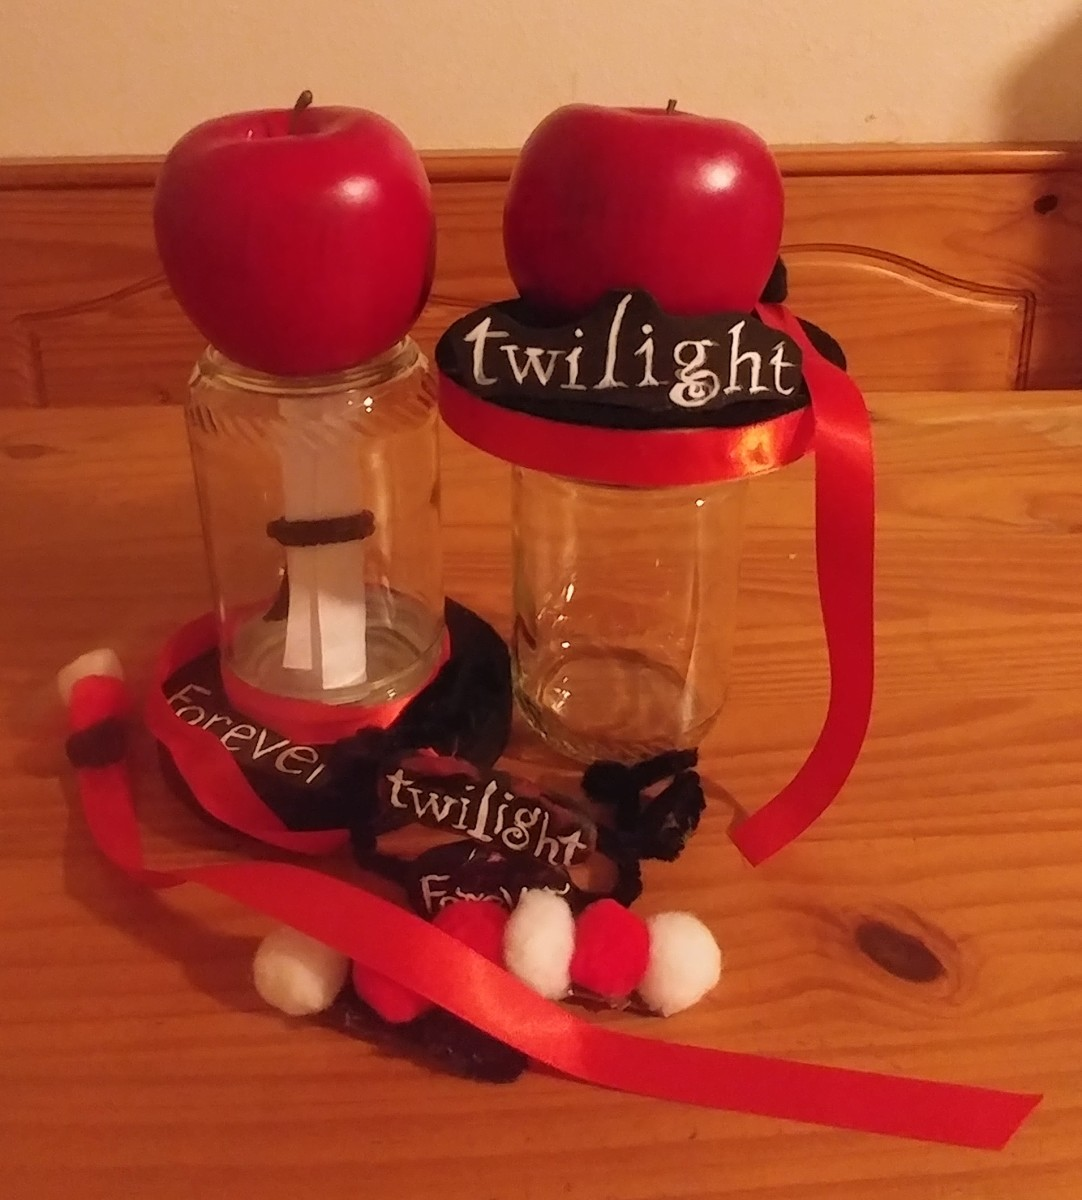 Fun Twilight Crafts